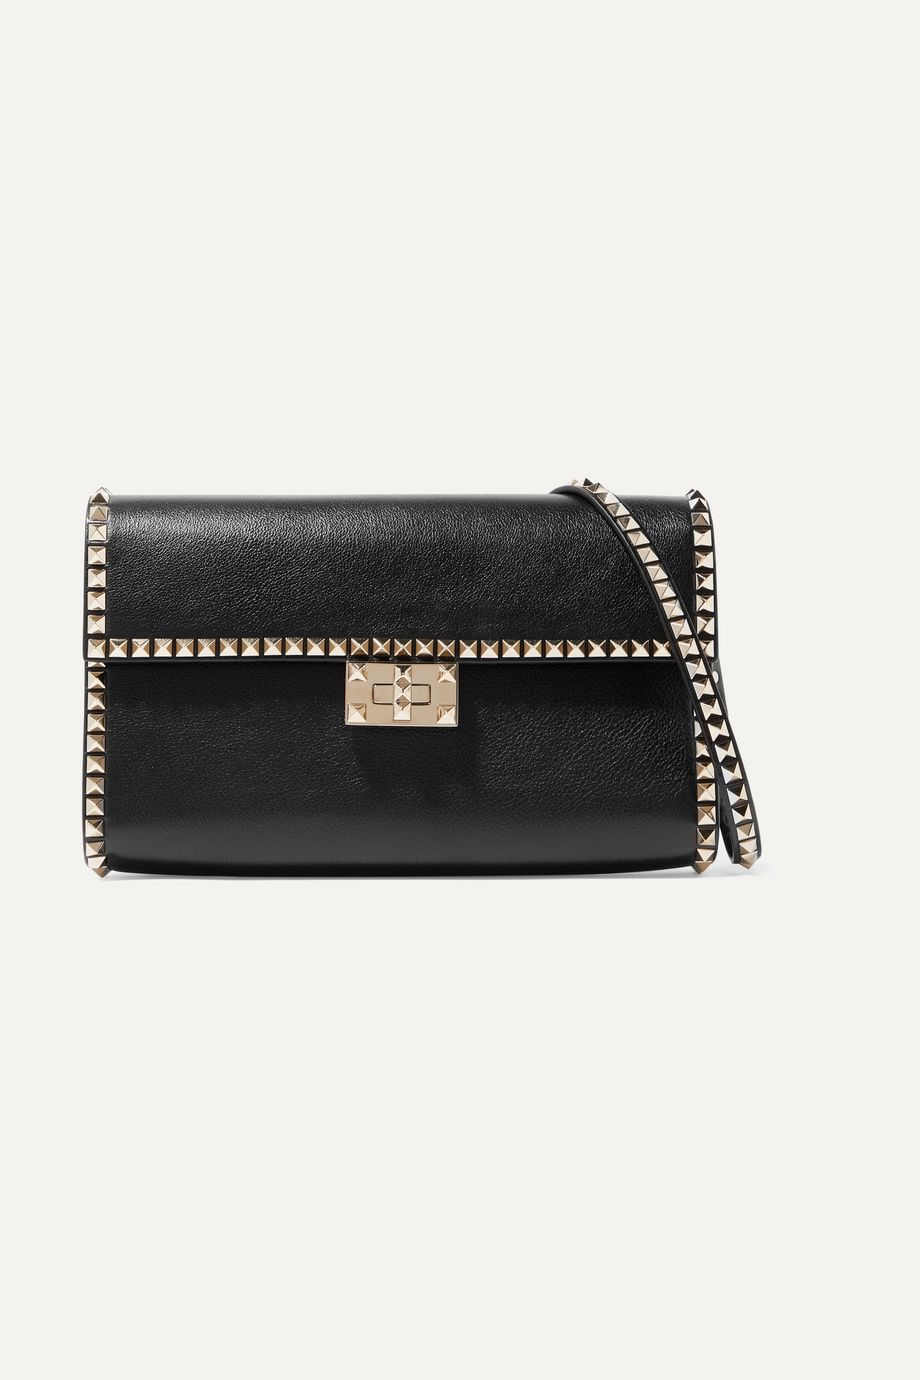 Valentino Valentino Garavani Rockstud No Limit textured-leather shoulder bag